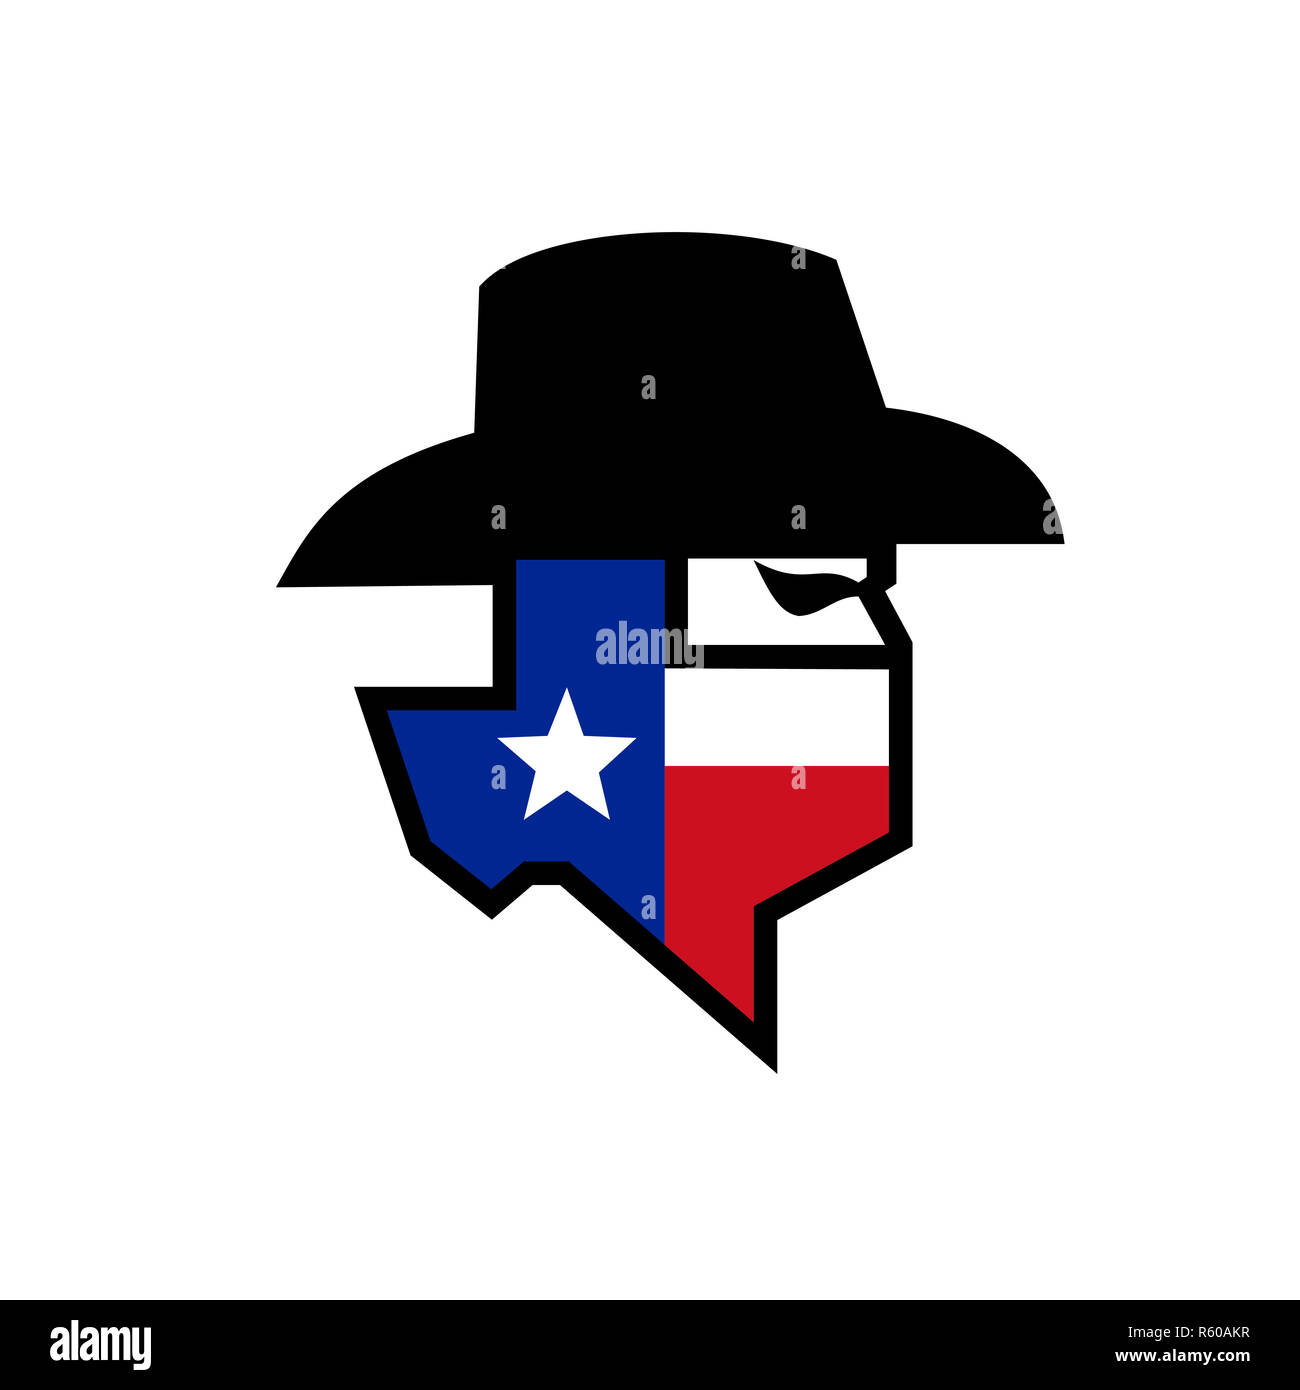 Mask Or Bandana With Texas Lone Star Flag Viewed Stockfotos Mask